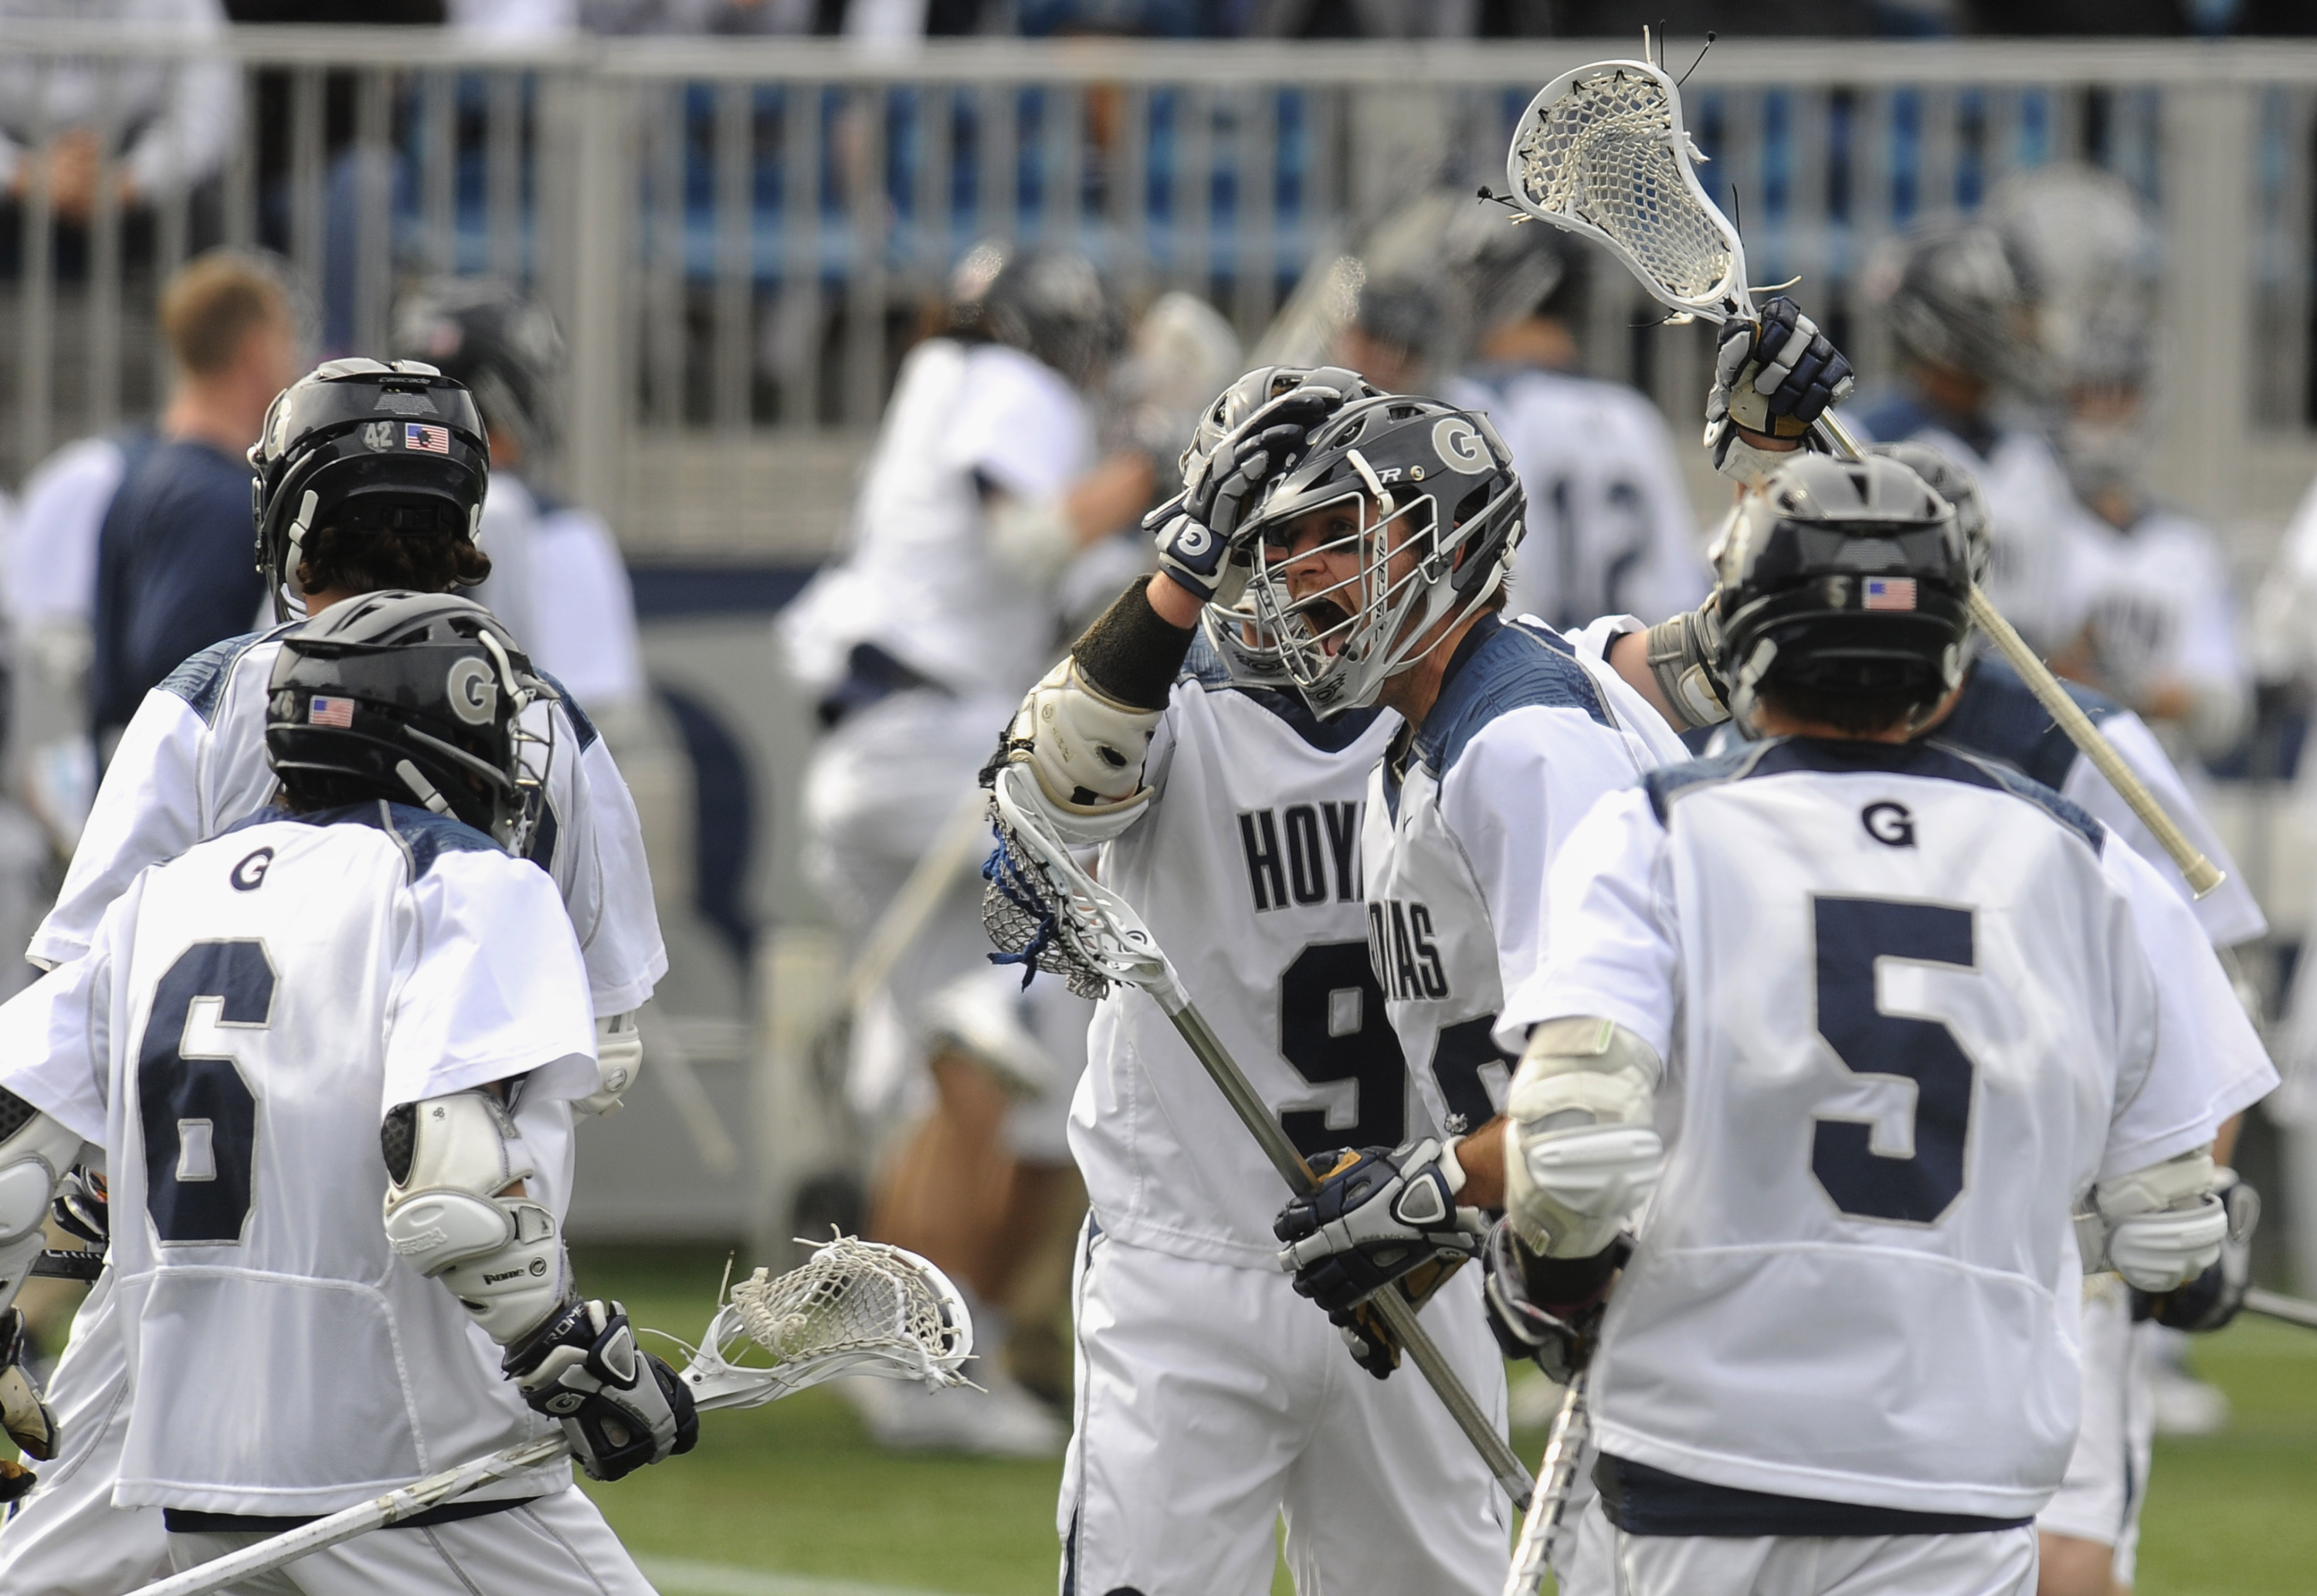 Georgetown take on Marquette on Saturday to keep its BIG EAST hopes alive.